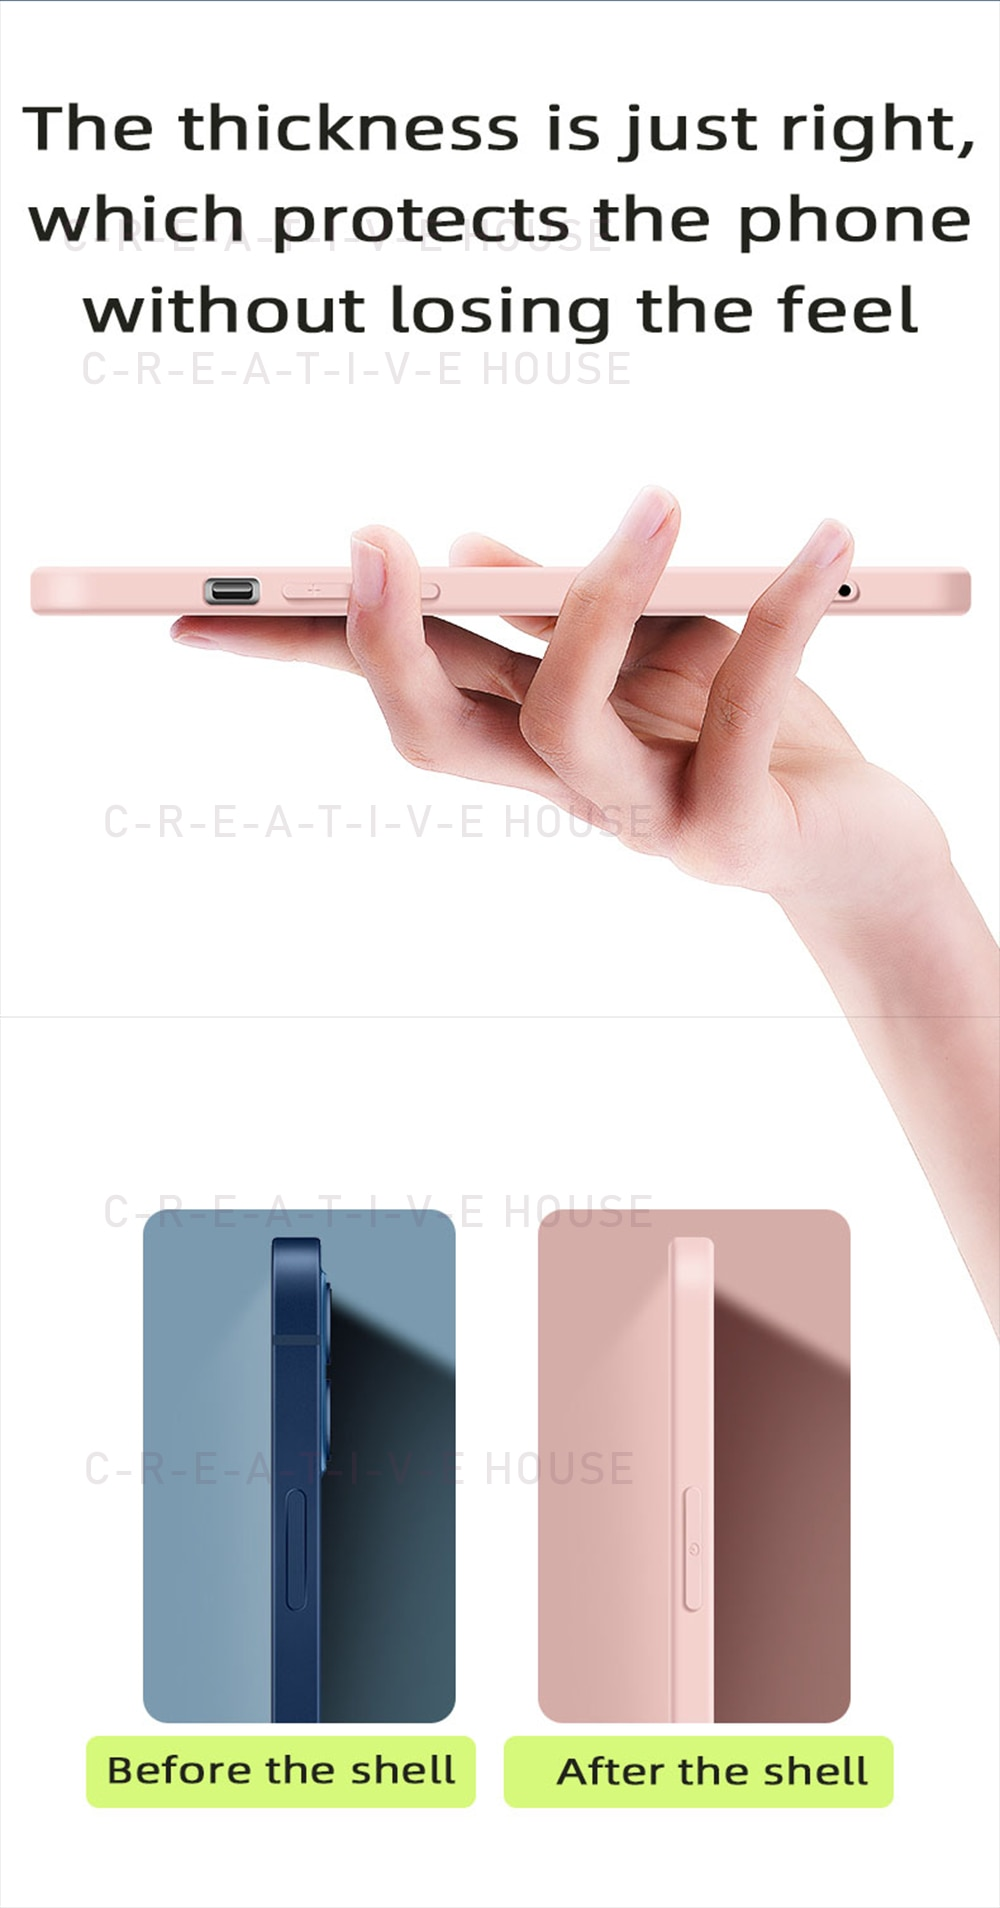 Liquid Square Tempered Glass Shockproof Case For Iphone 11 12 Pro X XR XS Max 7 8 Plus Mini SE 2020 WaterColor Apple Cover